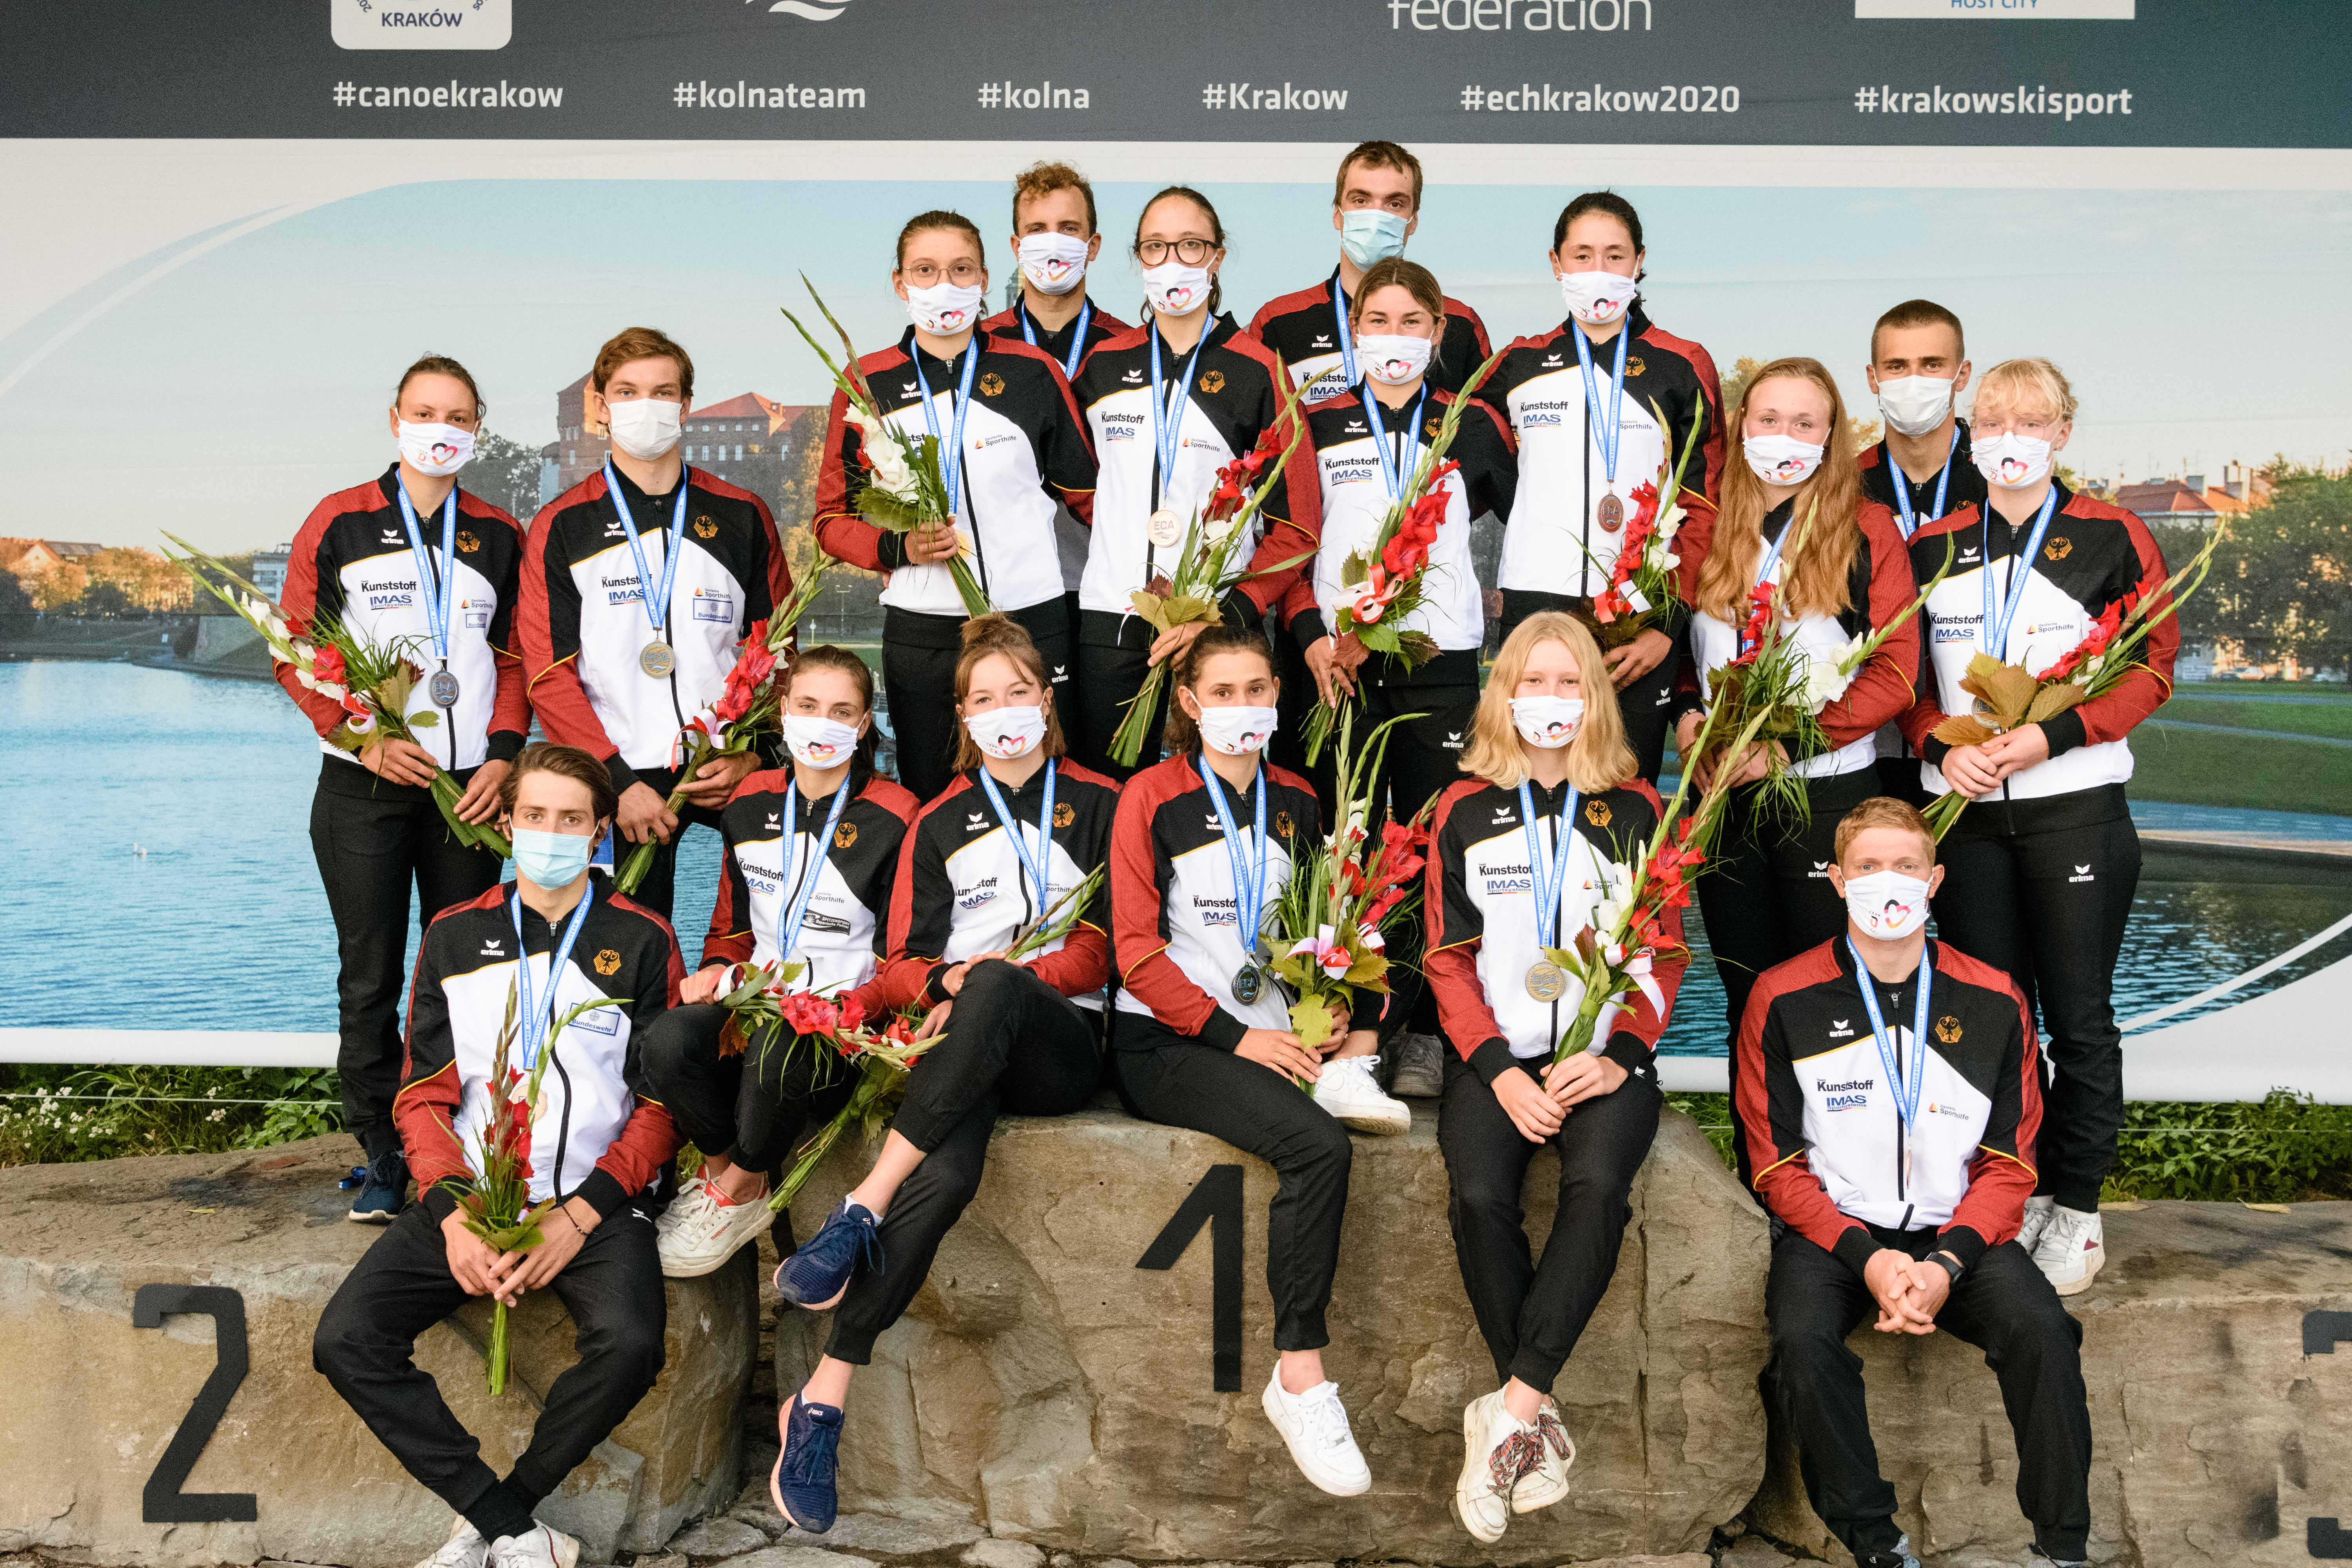 Team Germany U23/JEM Krakow